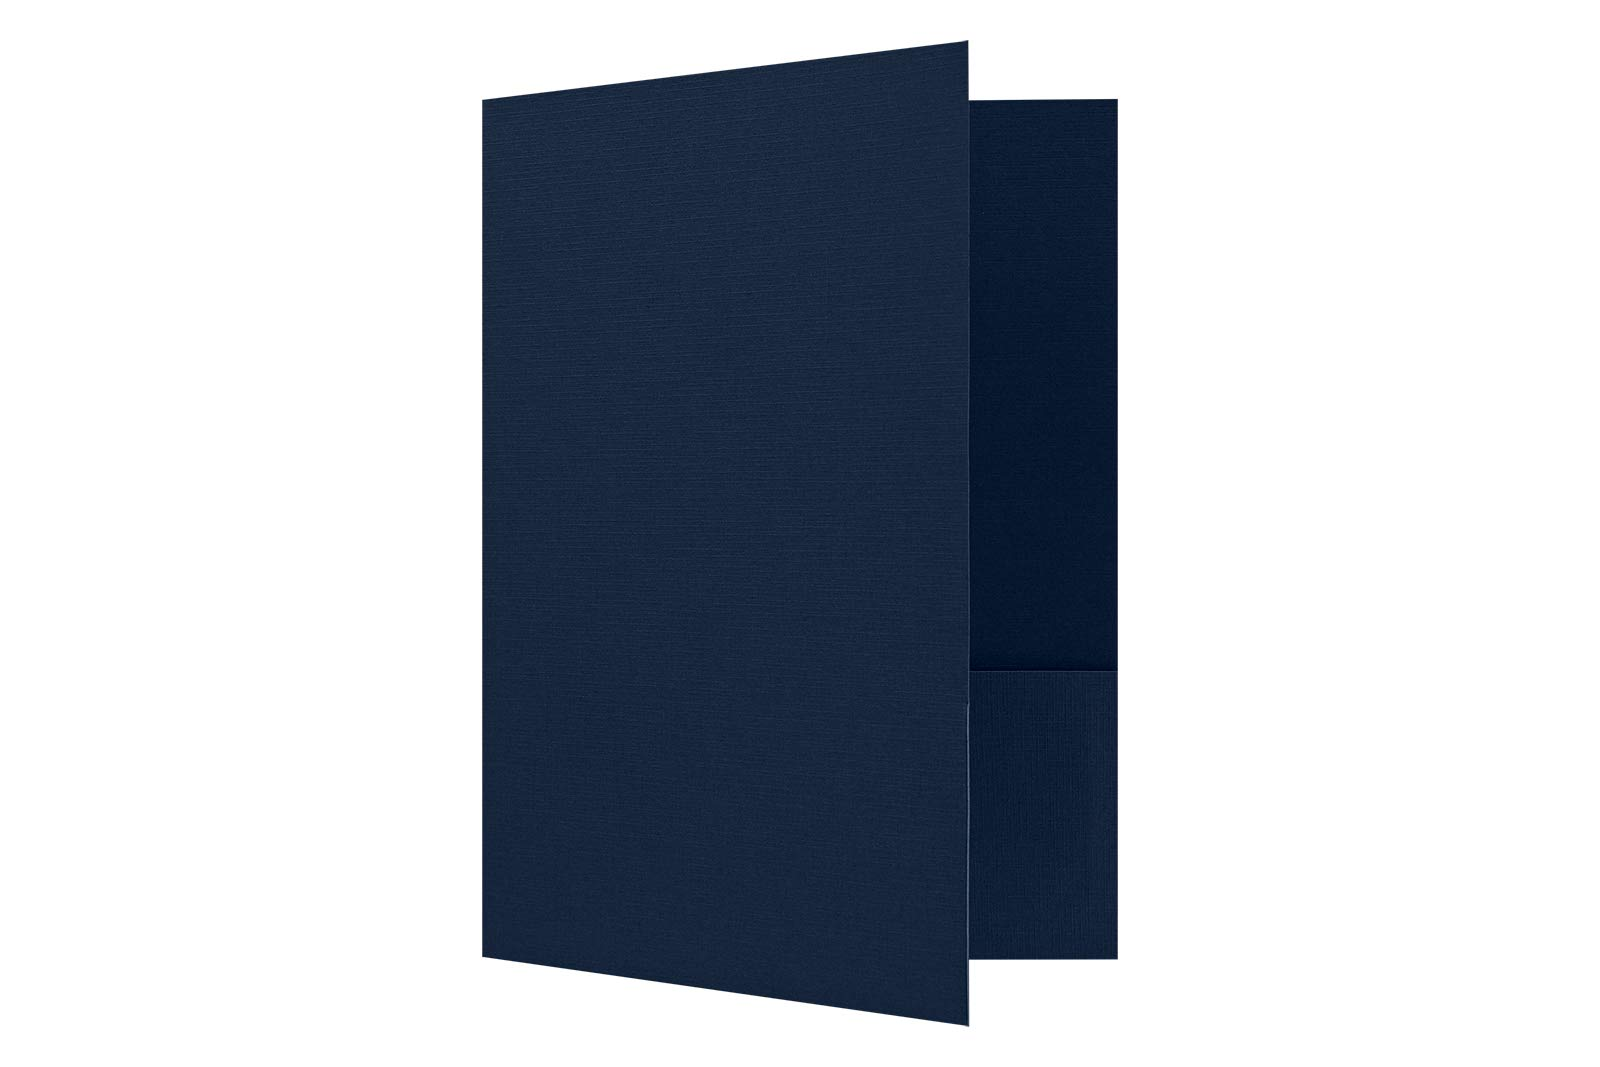 9 x 12 Presentation Folders - Dark Blue Linen - Pack of 25 | Perfect for Tax Season, Brochures, Sales Materials and so Much More! | PF-DBLI-25 by Envelopes.com